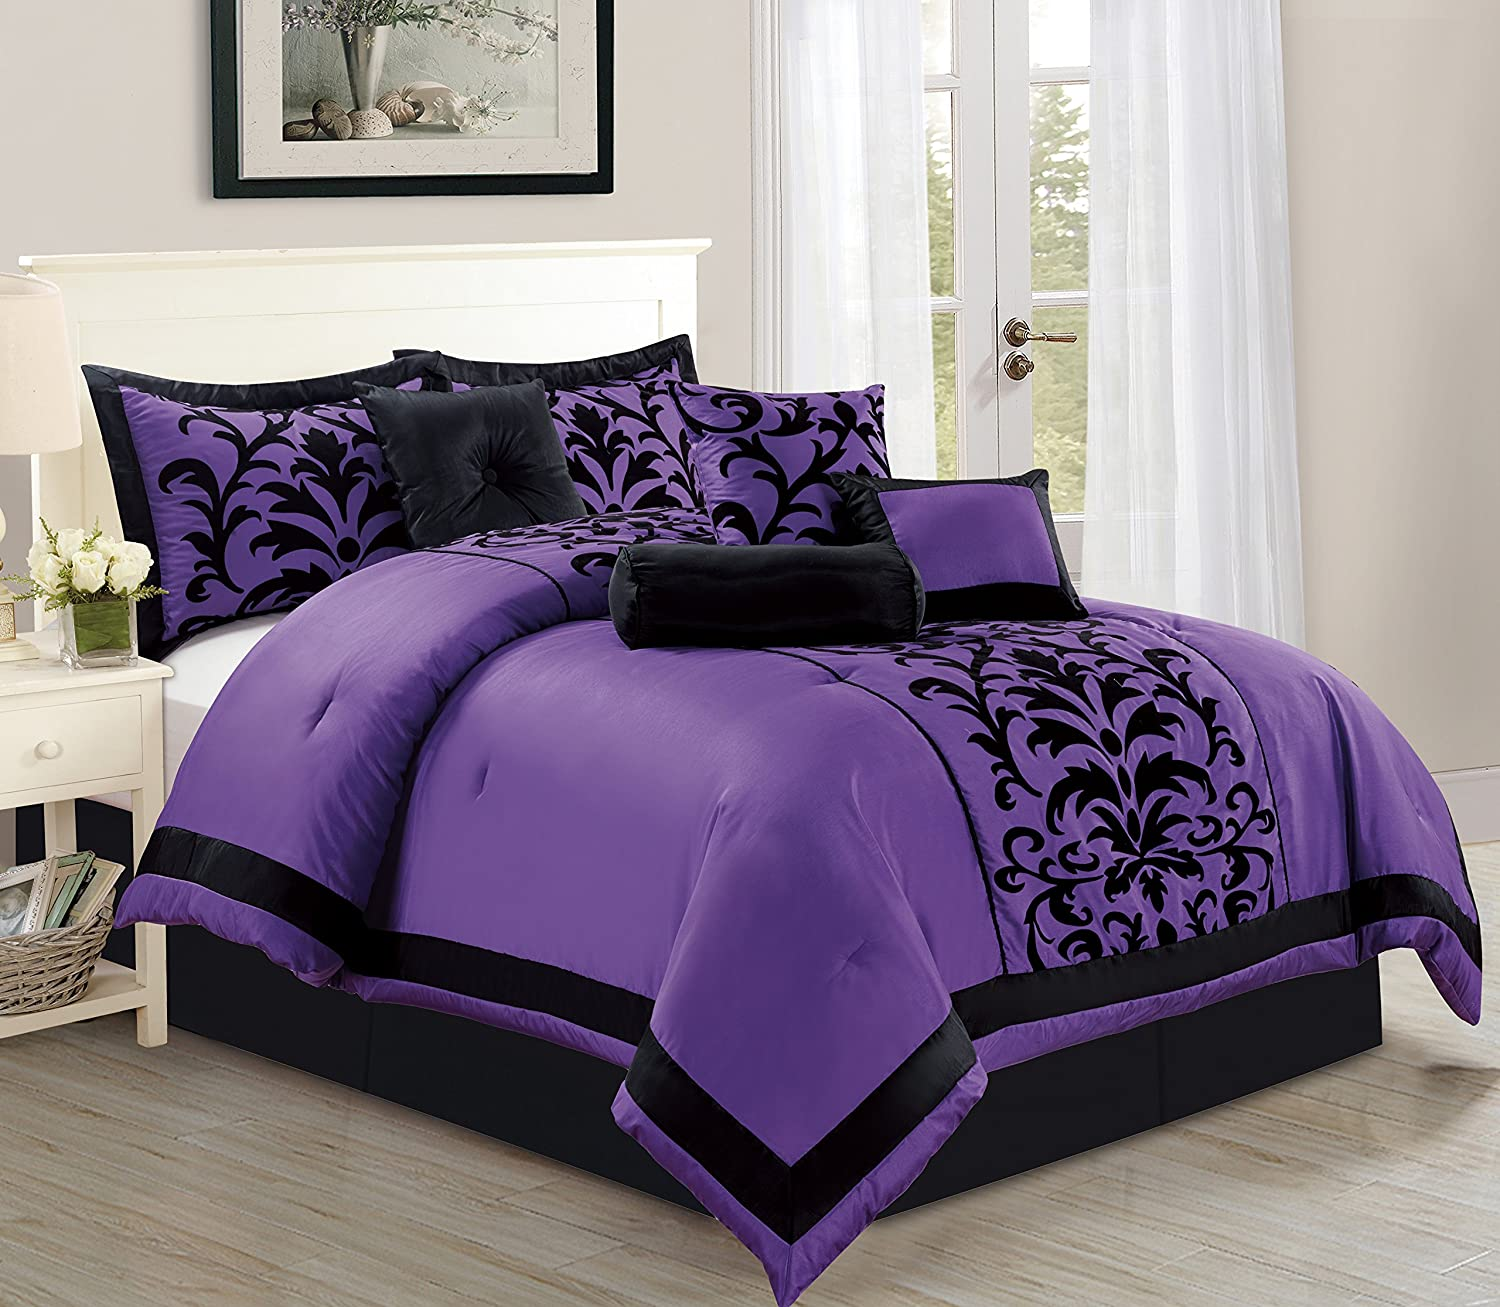 purple of lodge king light modern rural bedding with set queen image italy ecrins go comforter sets